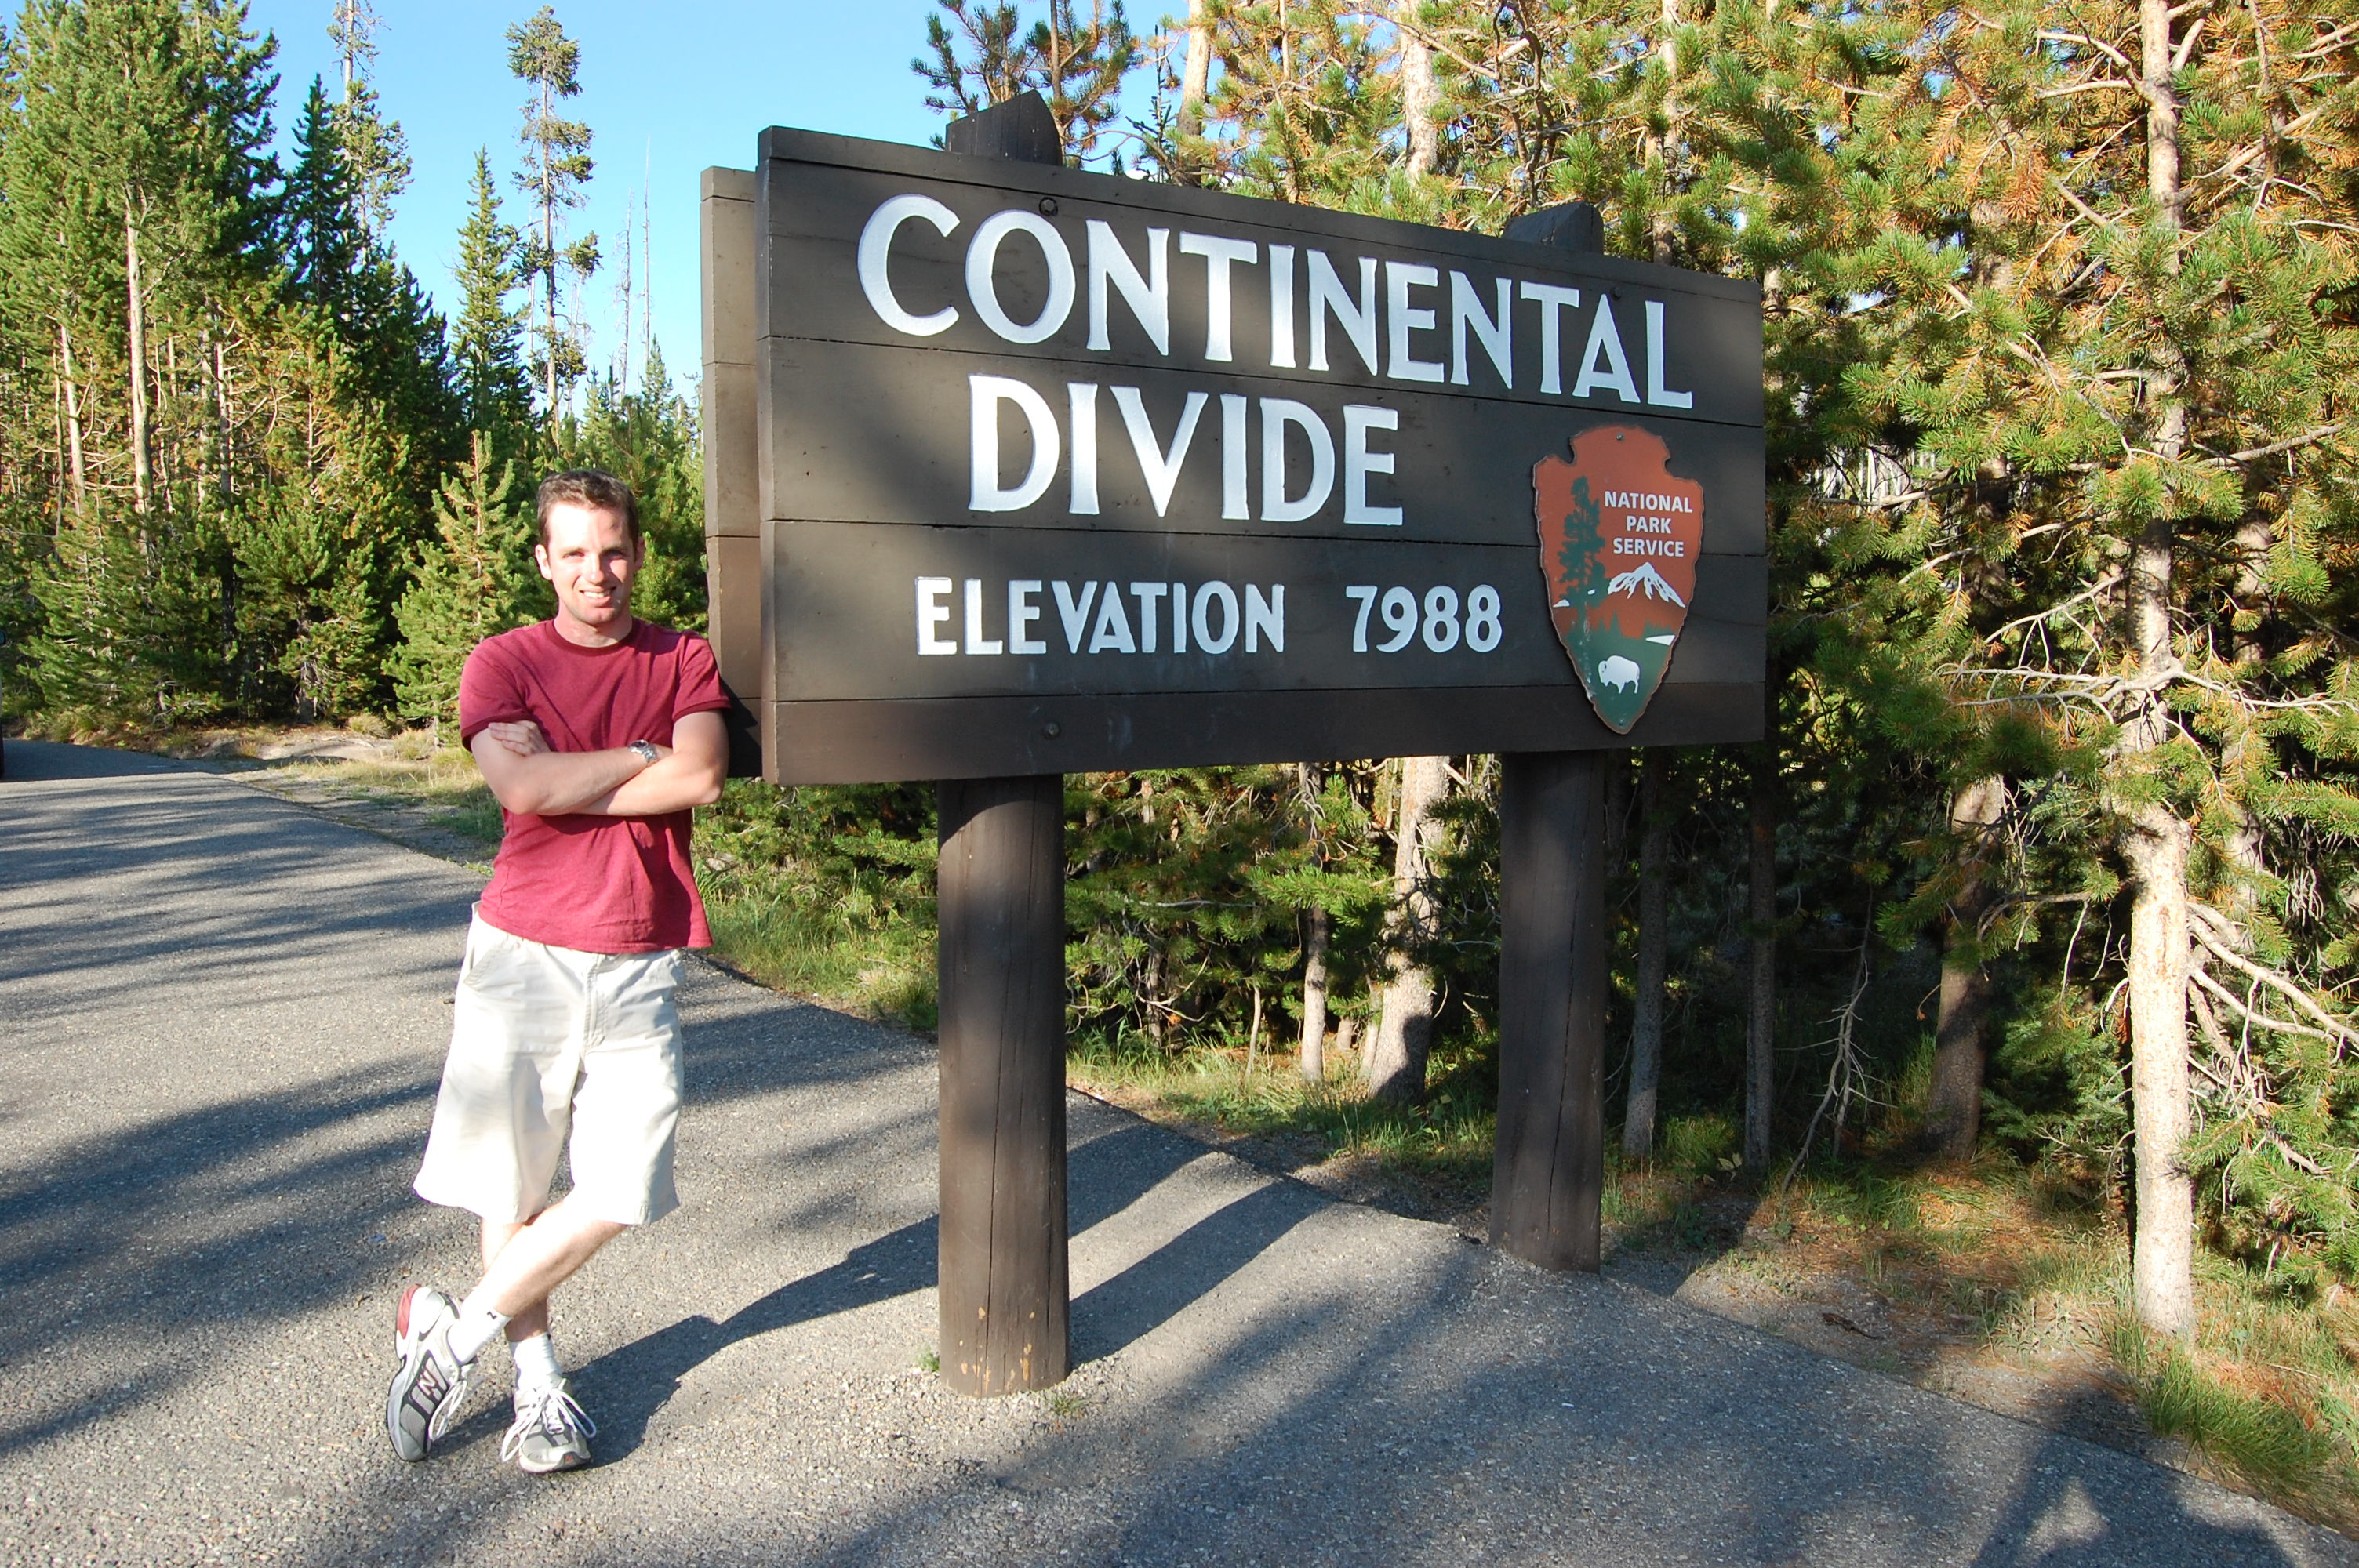 continental divide sex personals If look for hot woman in continental divide, in the state of new mexico, in latinomeetup you will find thousand of latins in continental divide.